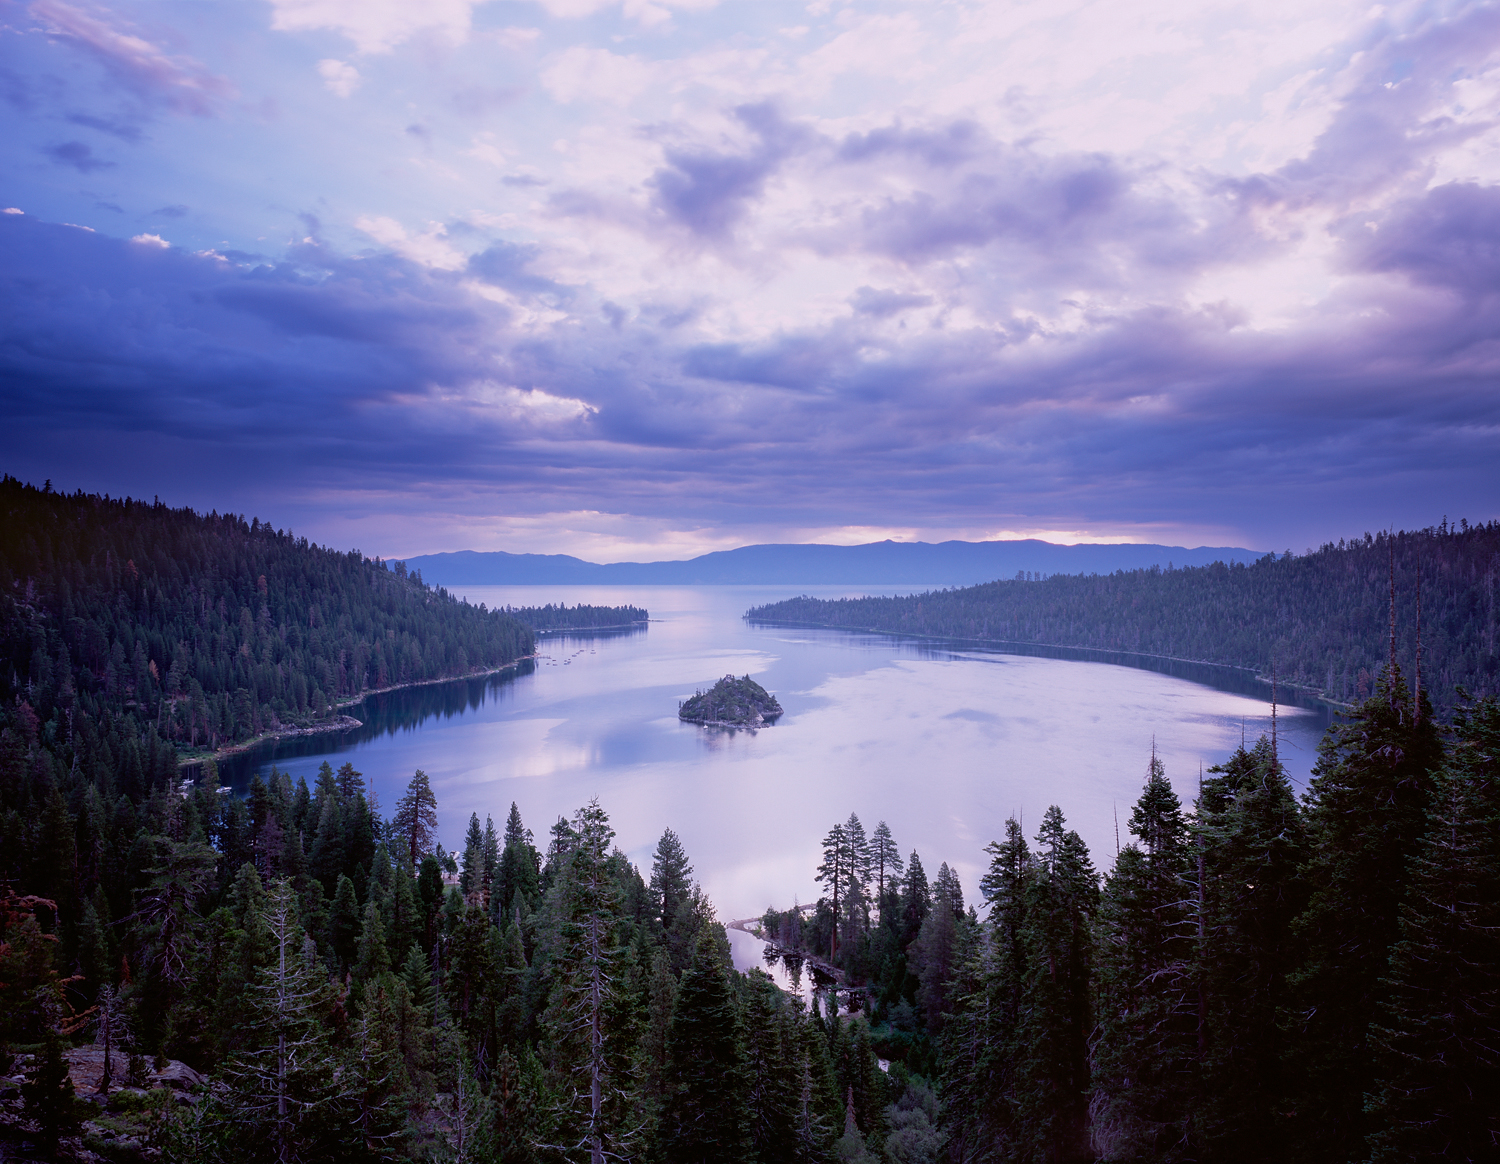 Morning Majesty, Emerald Bay, Lake Tahoe